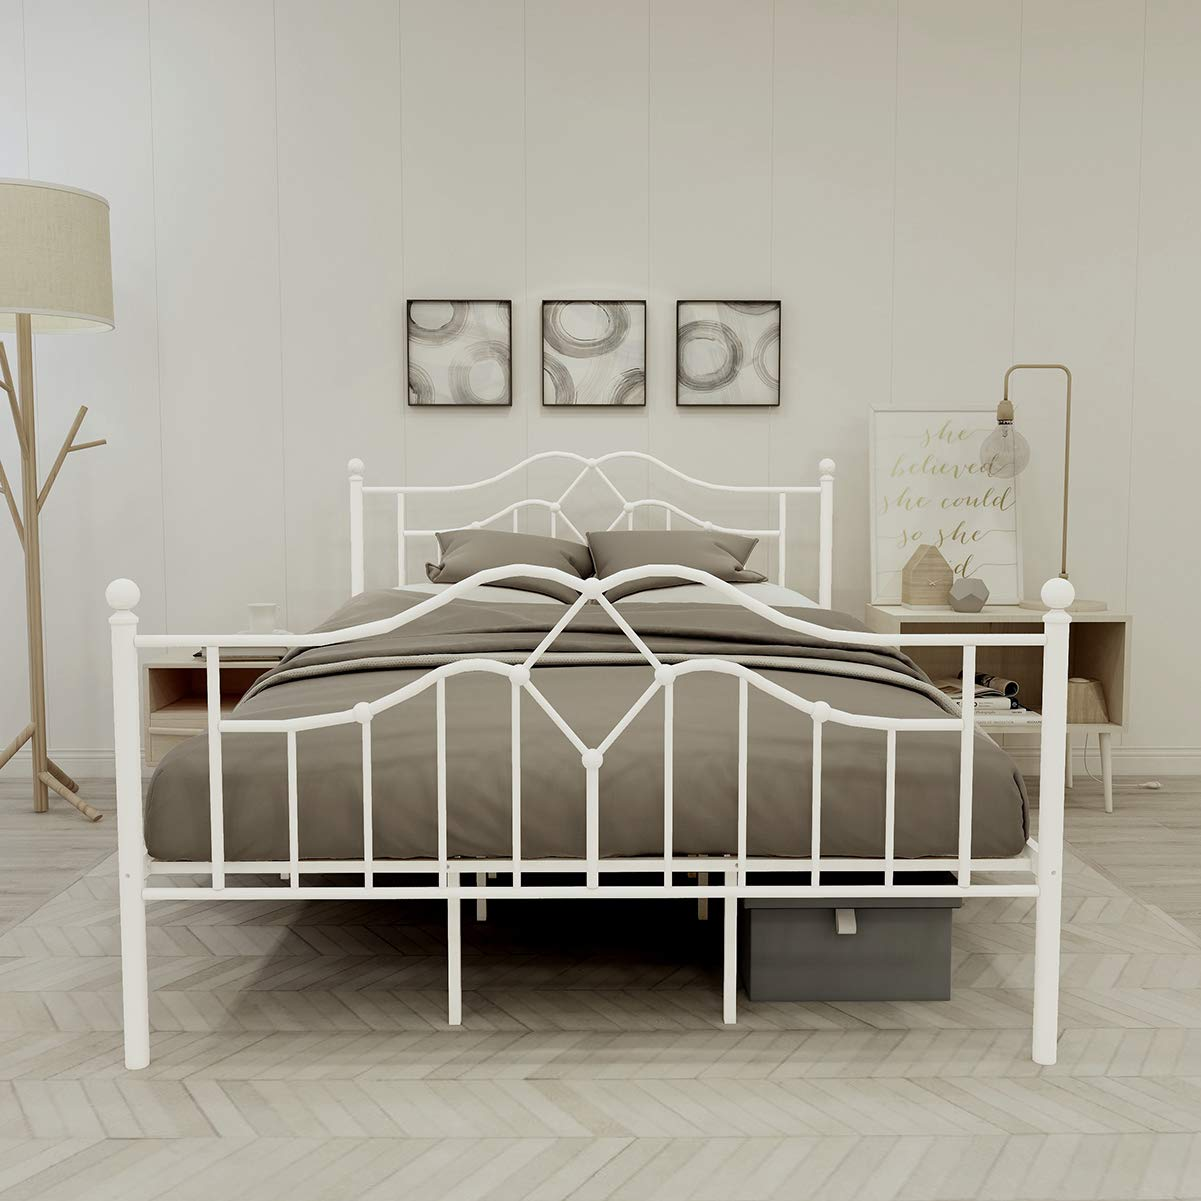 Alazyhome Metal Bed Frame Queen Size Platform No Box Spring Needed with Vintage Headboard and Footboard Premium Steel Slat Support Mattress Foundation White